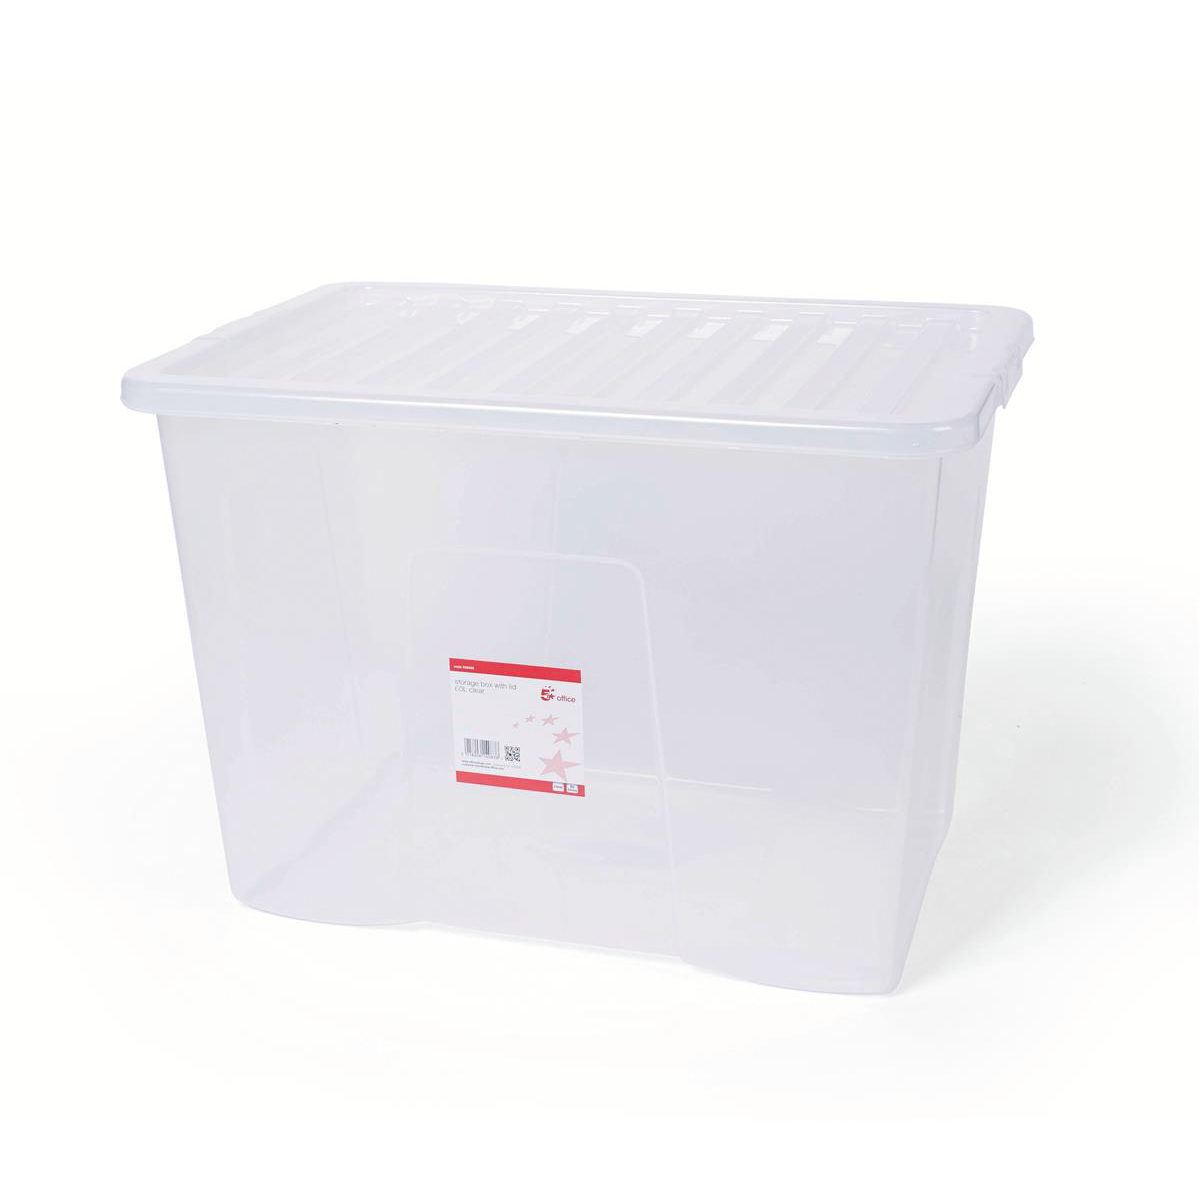 Tool Boxes 5 Star Office Storage Box Plastic with Lid Stackable 60 Litre Clear